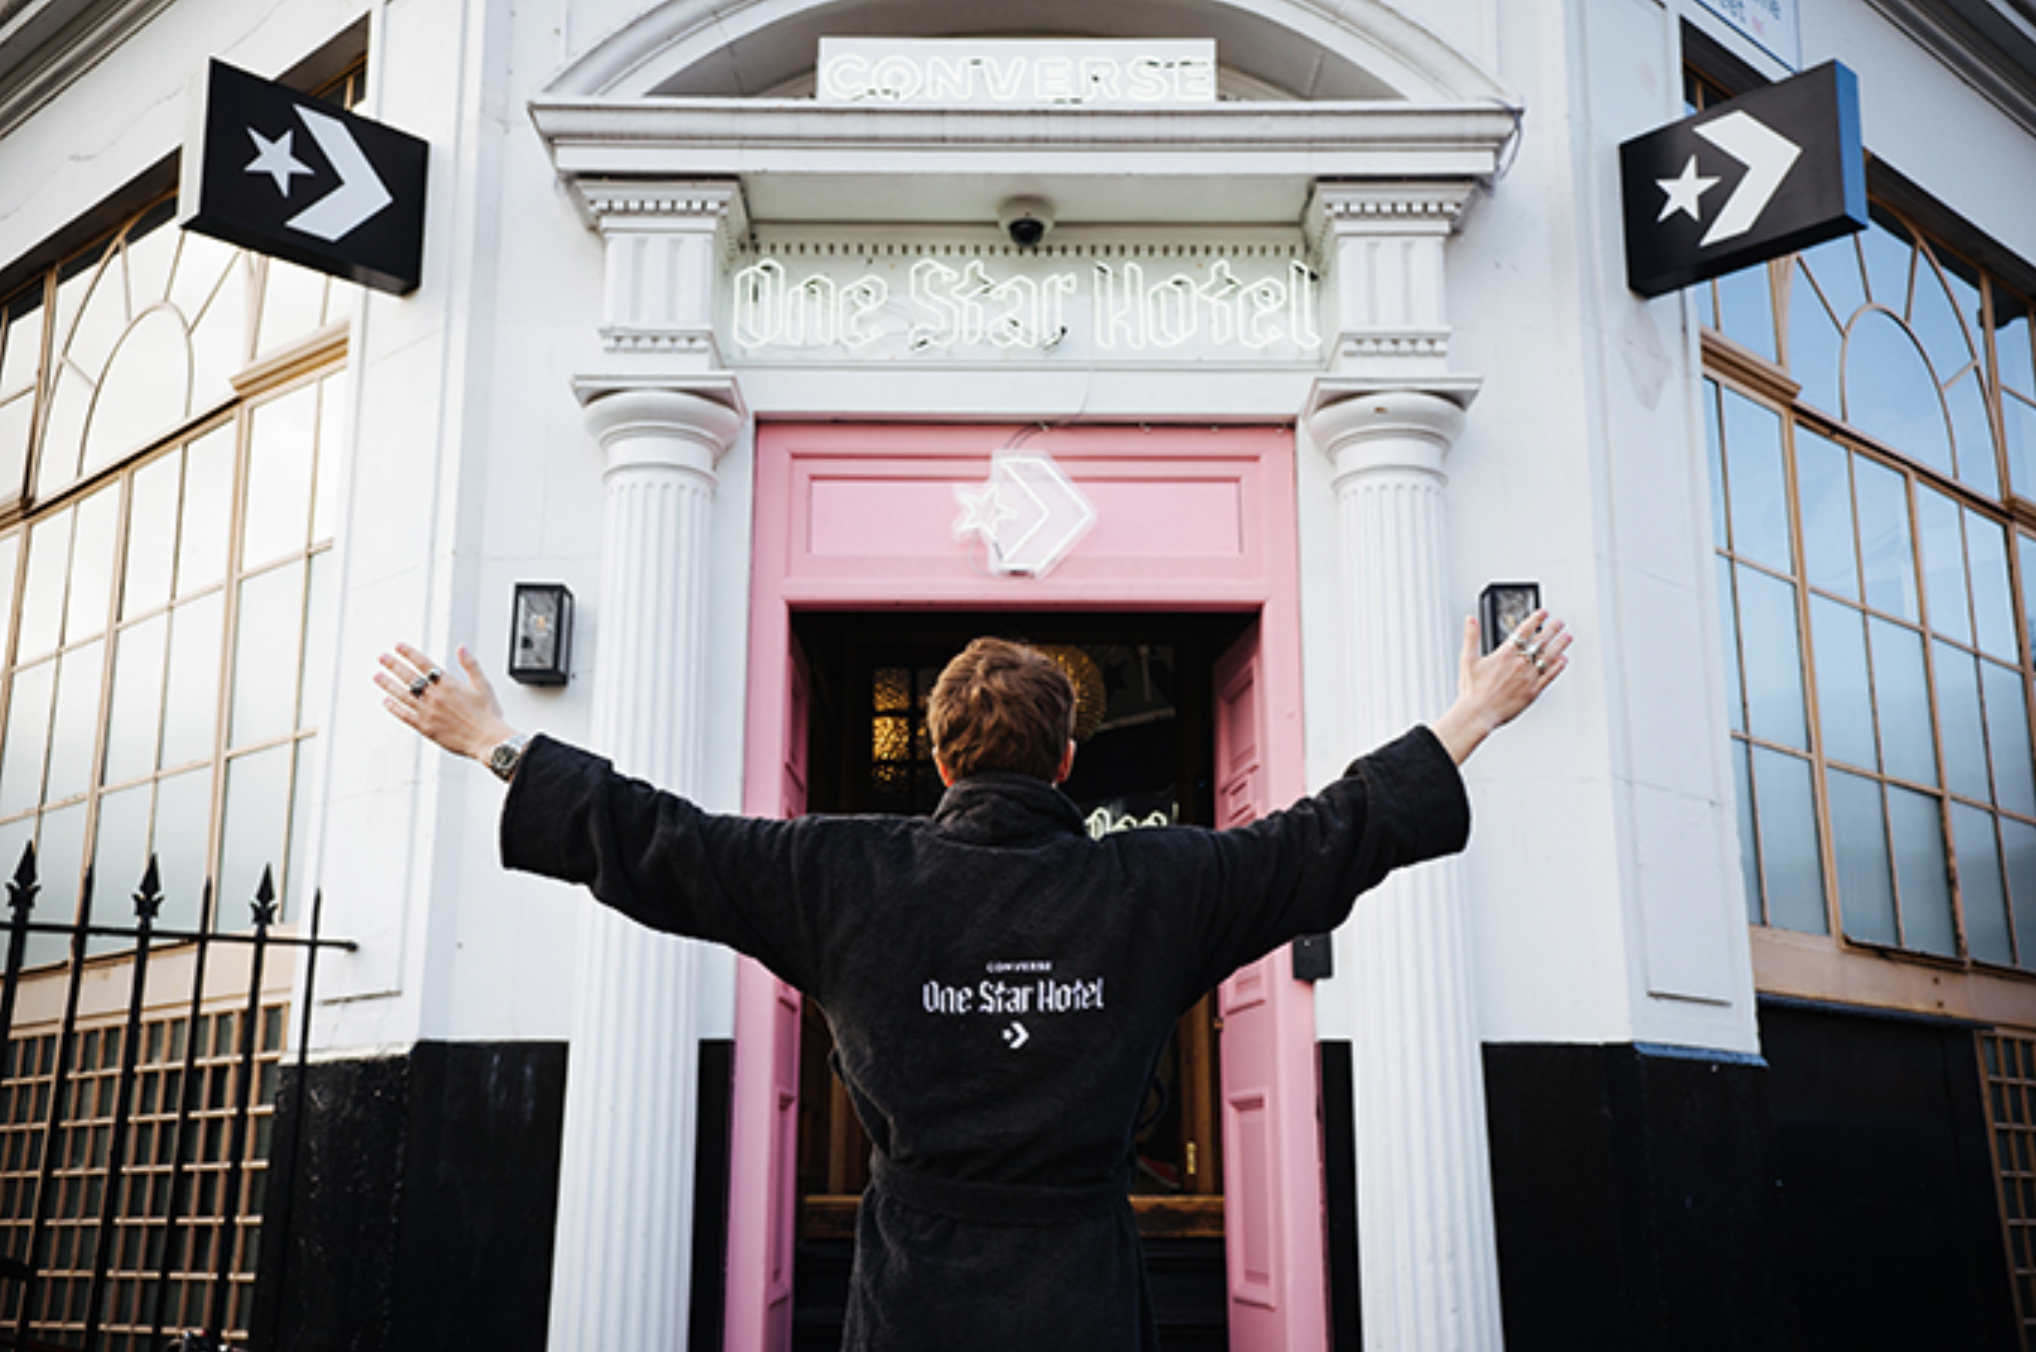 Converse One Star Hotel activation in Shoreditch